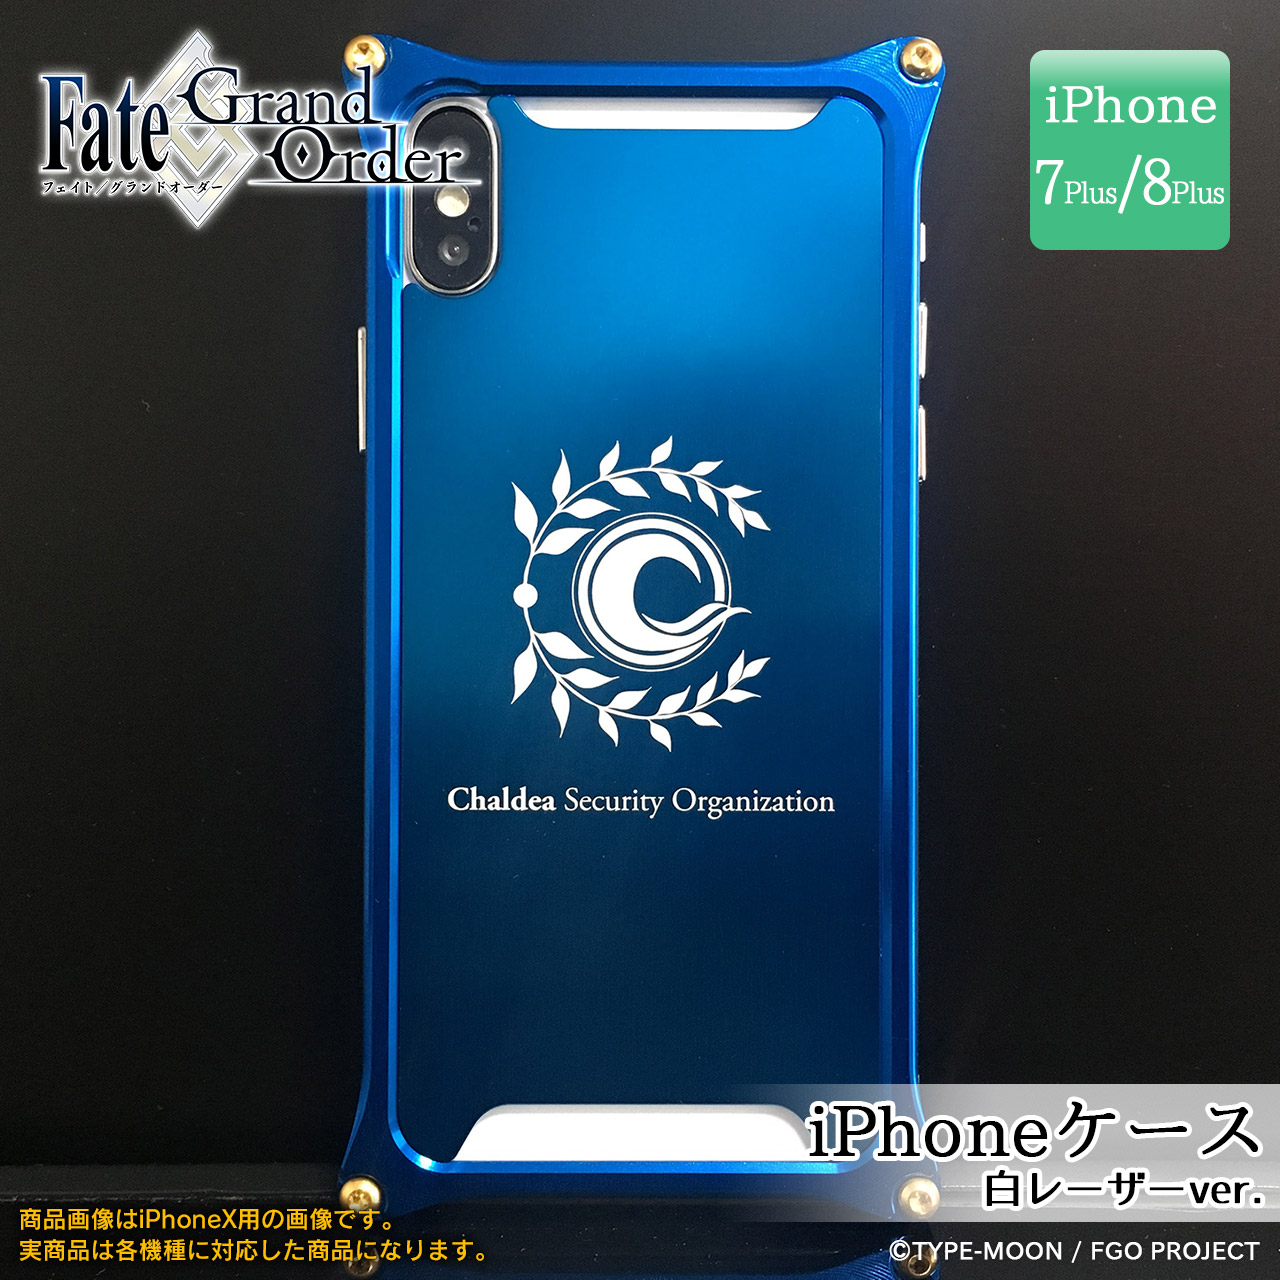 『Fate/Grand Order』×『GILD design』iPhone7Plus/8Plusケース  人理継続保障機関カルデア 白レーザーver.